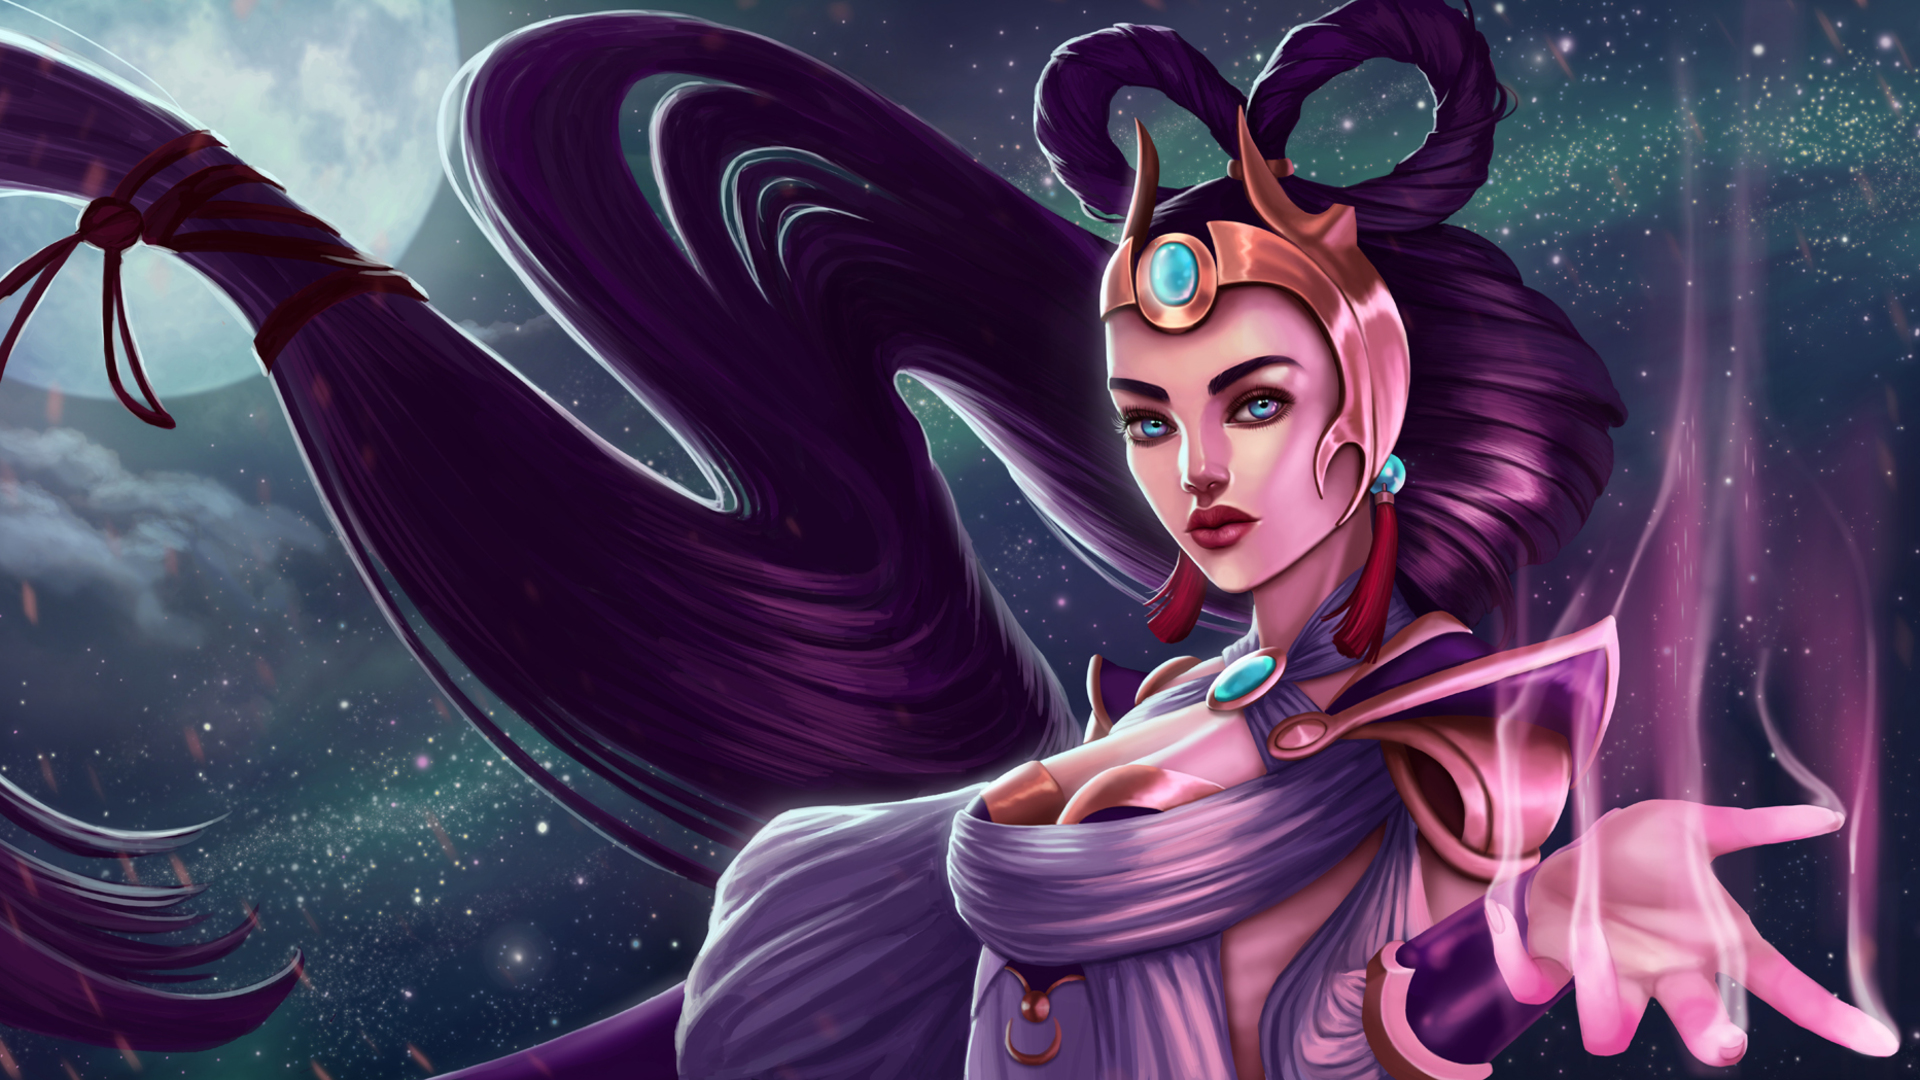 1920x1080 Diana League Of Legends Fantasy Girl Laptop Full Hd